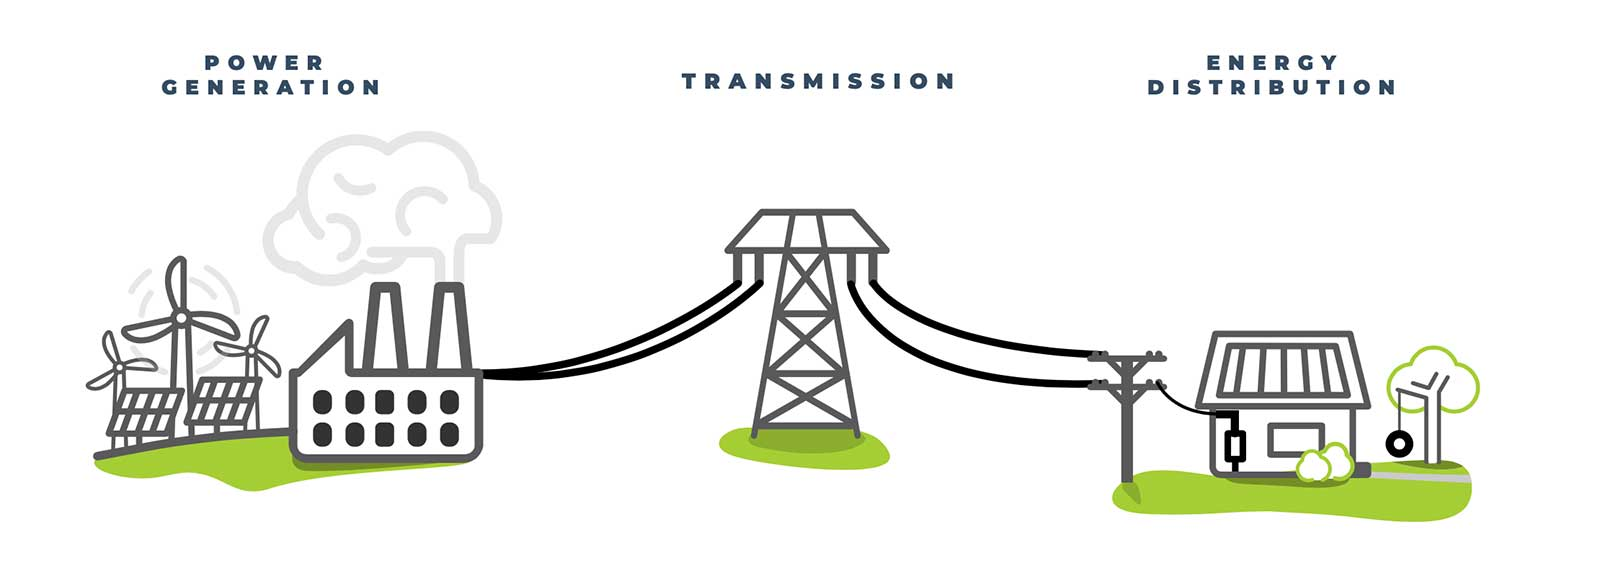 Understand Energy generation, transmission and distribution charges, EnerWisely